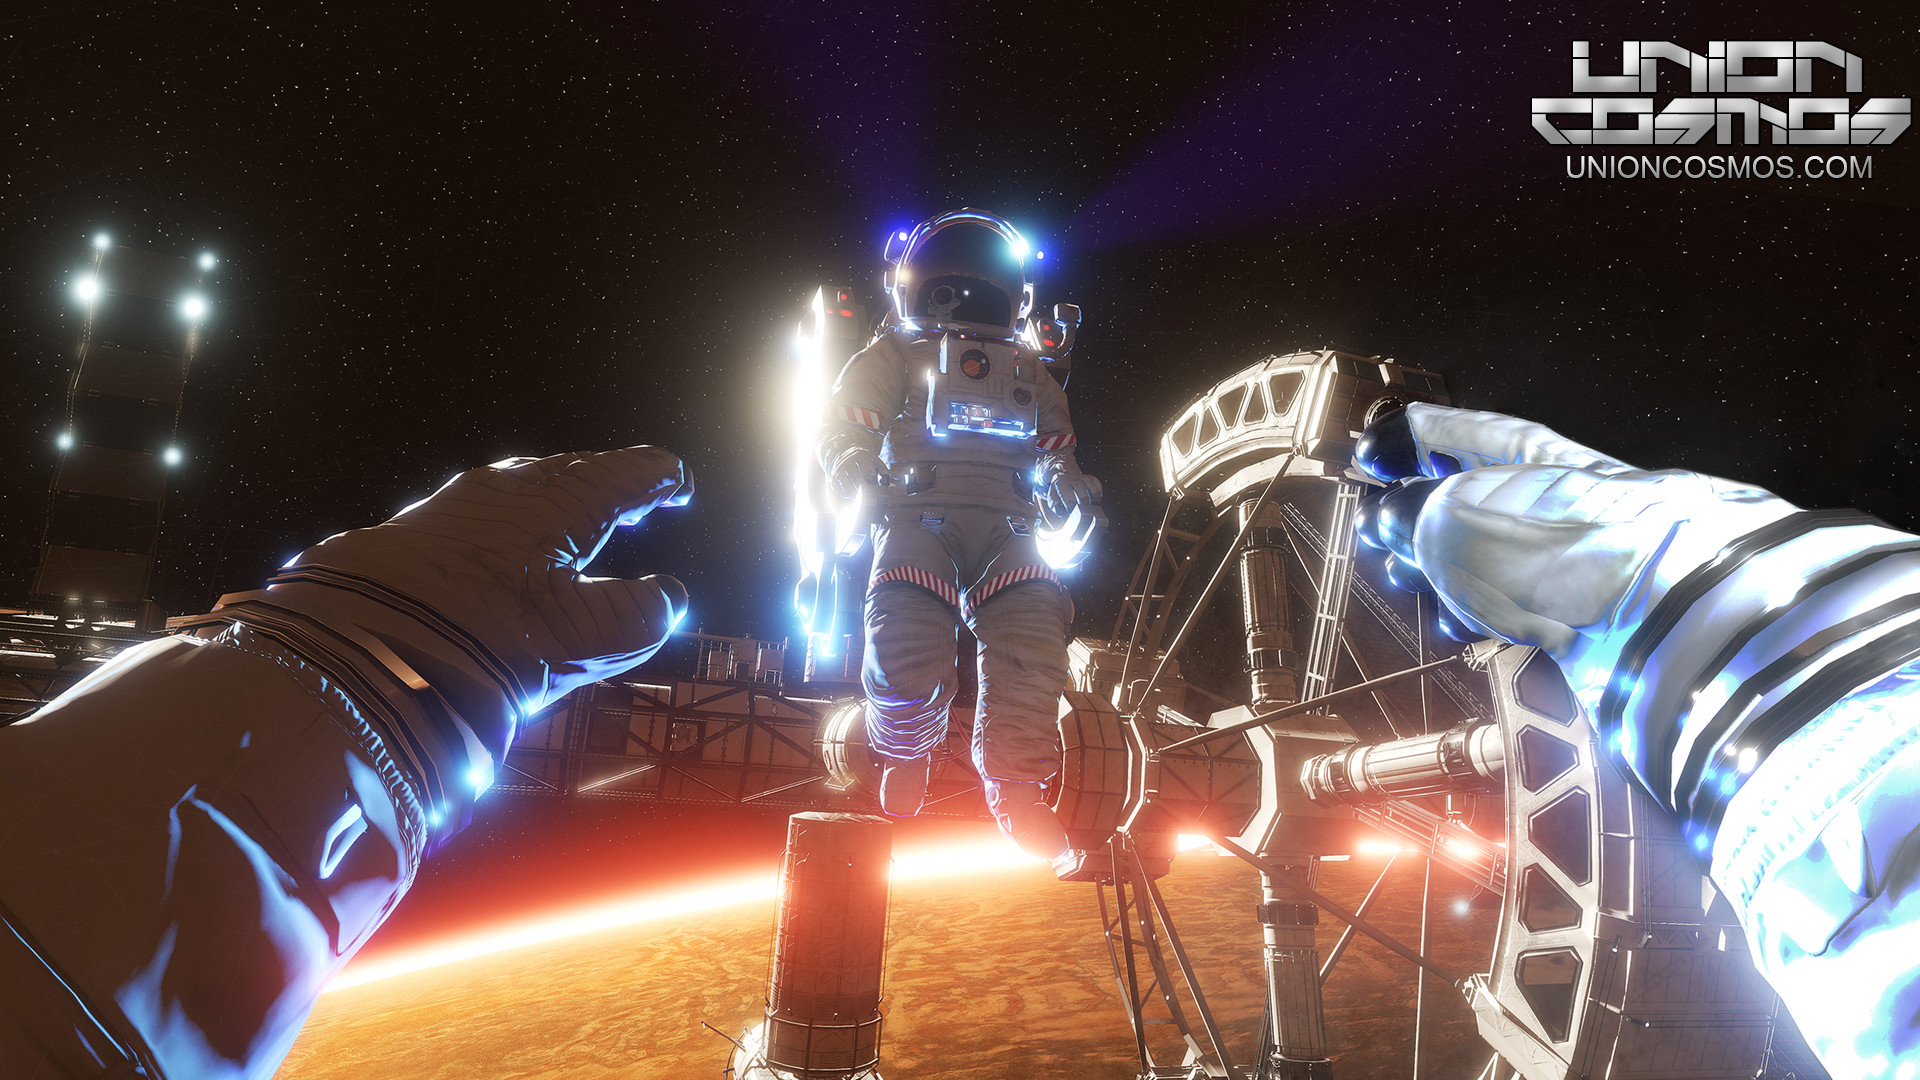 union-cosmos-the-martian-vr-experience-screenshot-1